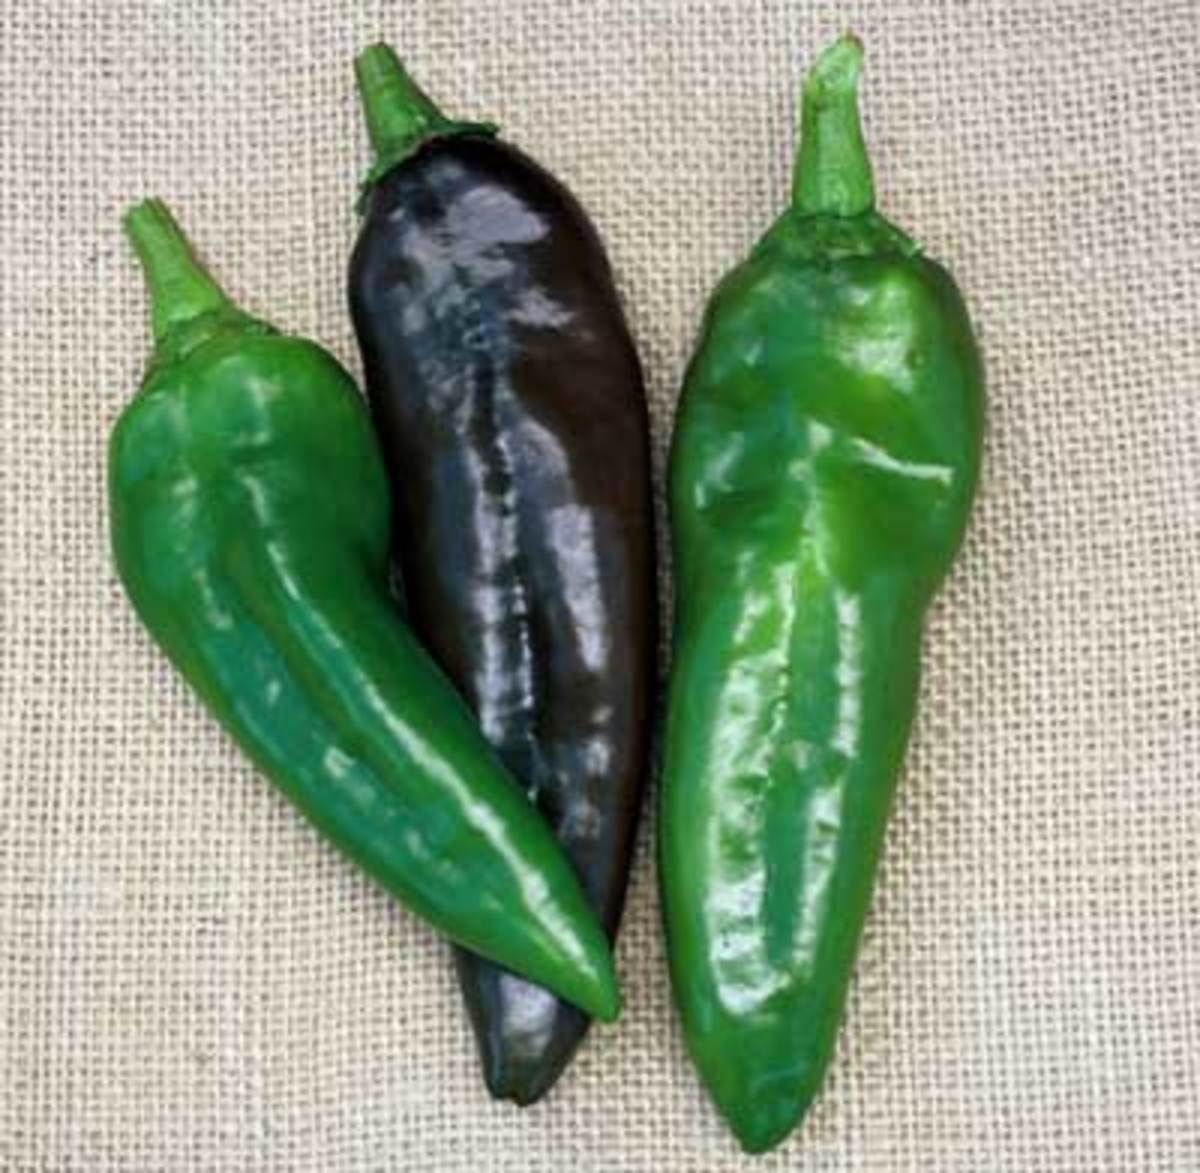 Ahaheim - Also know as the 'New Mexican Chile,' this moderately pungent fruit is deep green, but turns red at full maturity. Very smooth peppers are 7-1/2 inches long and 2 inches wide and borne on tall, productive plants that offer good foliage cove